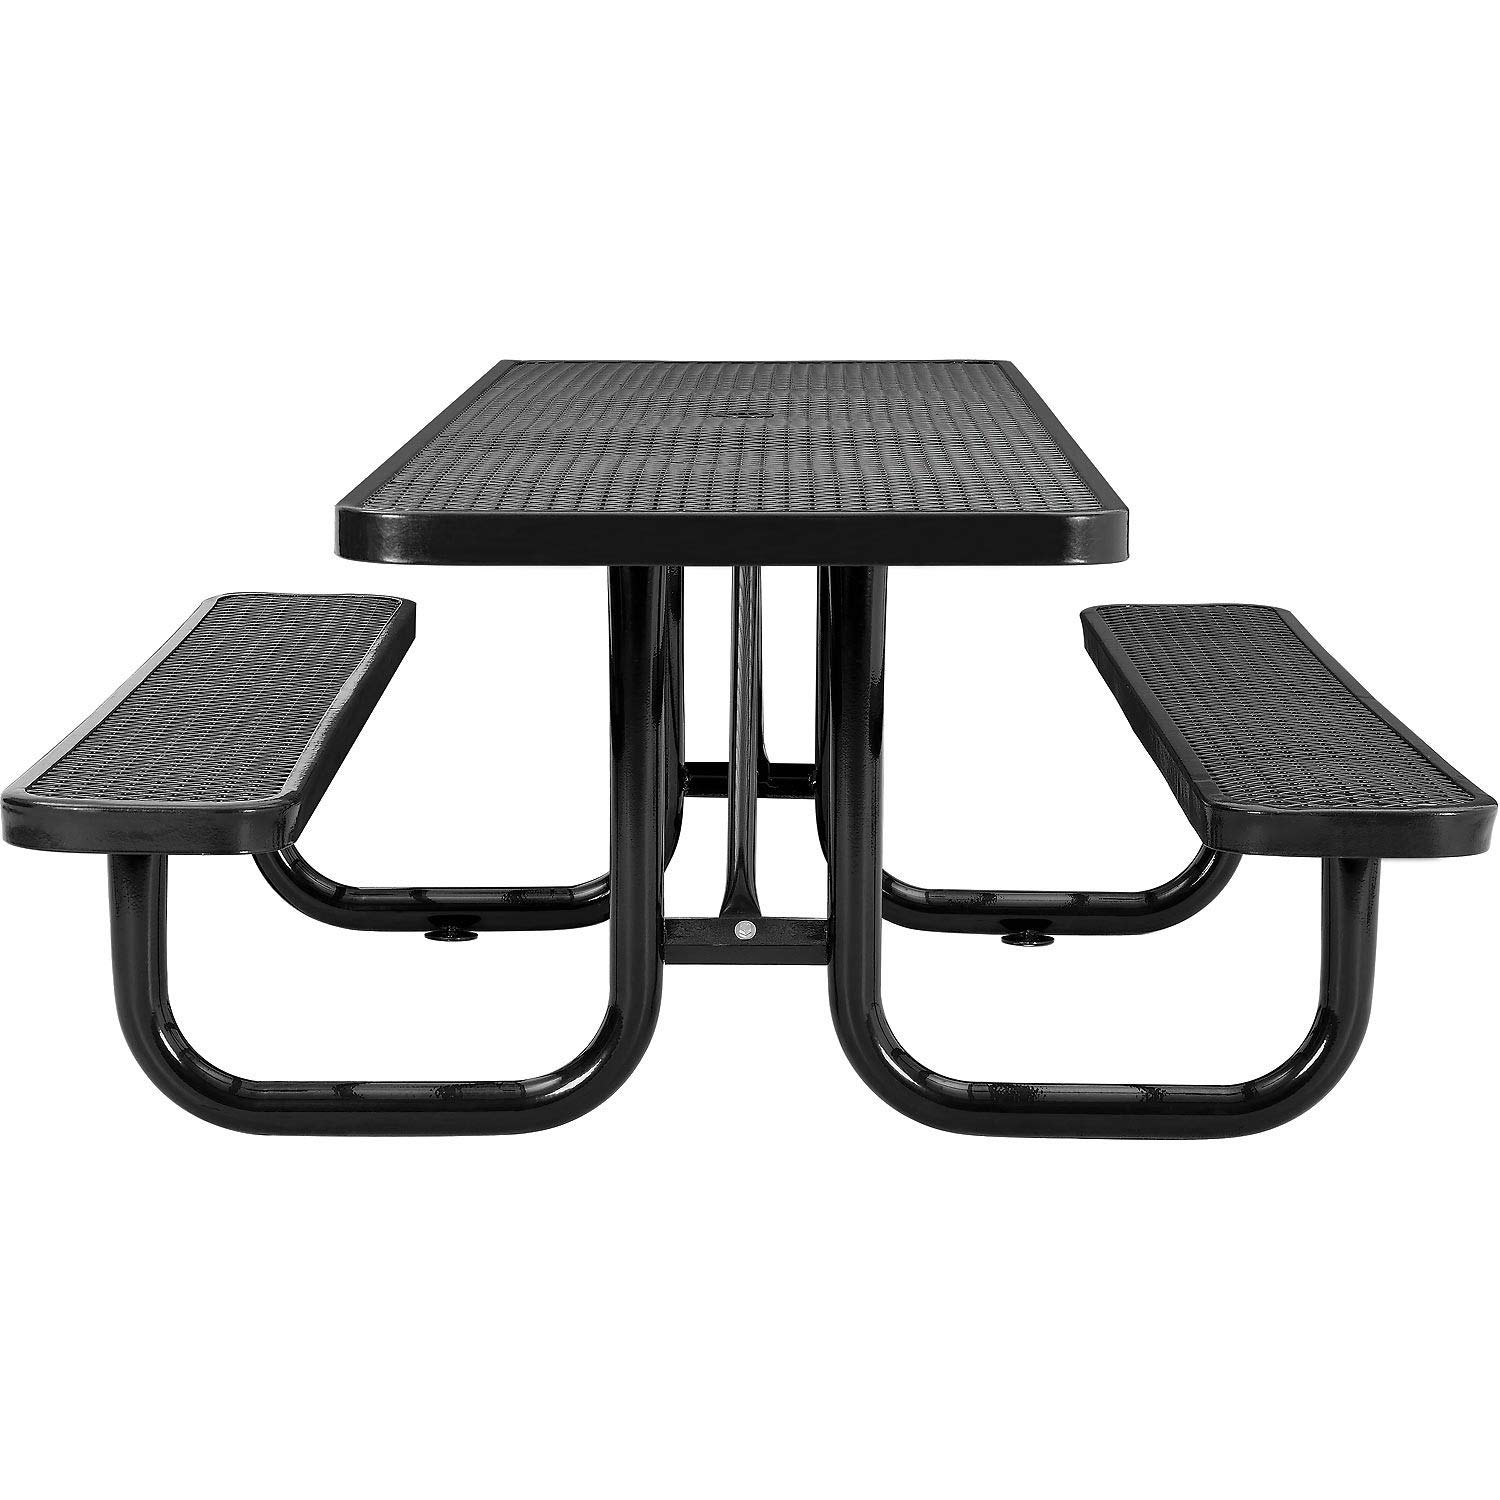 8 ADA Rectangular Picnic Table, Expanded Metal, Black 96 Long